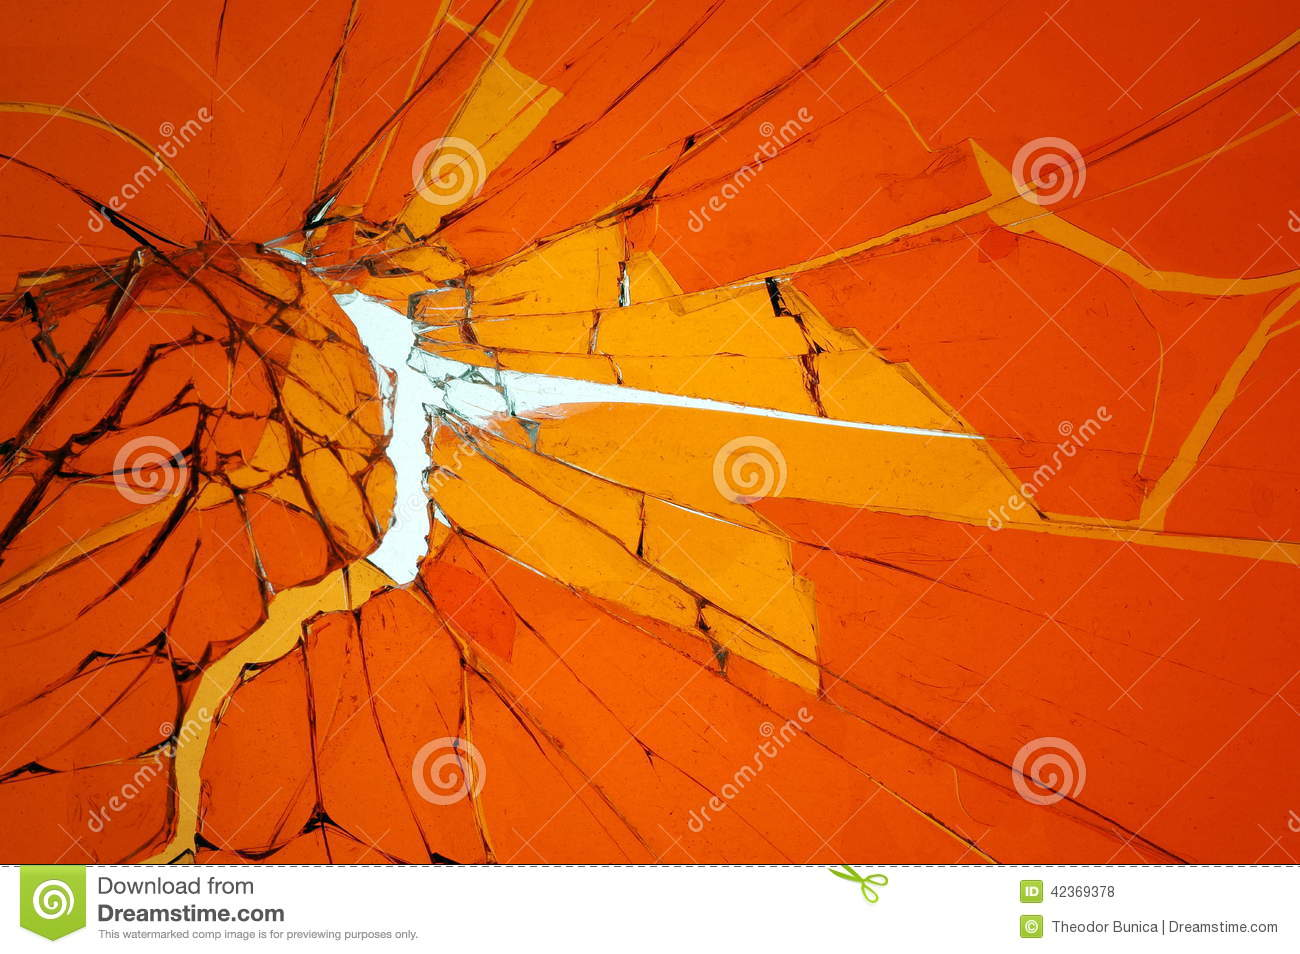 Background with broken cracked glass. Colored glass